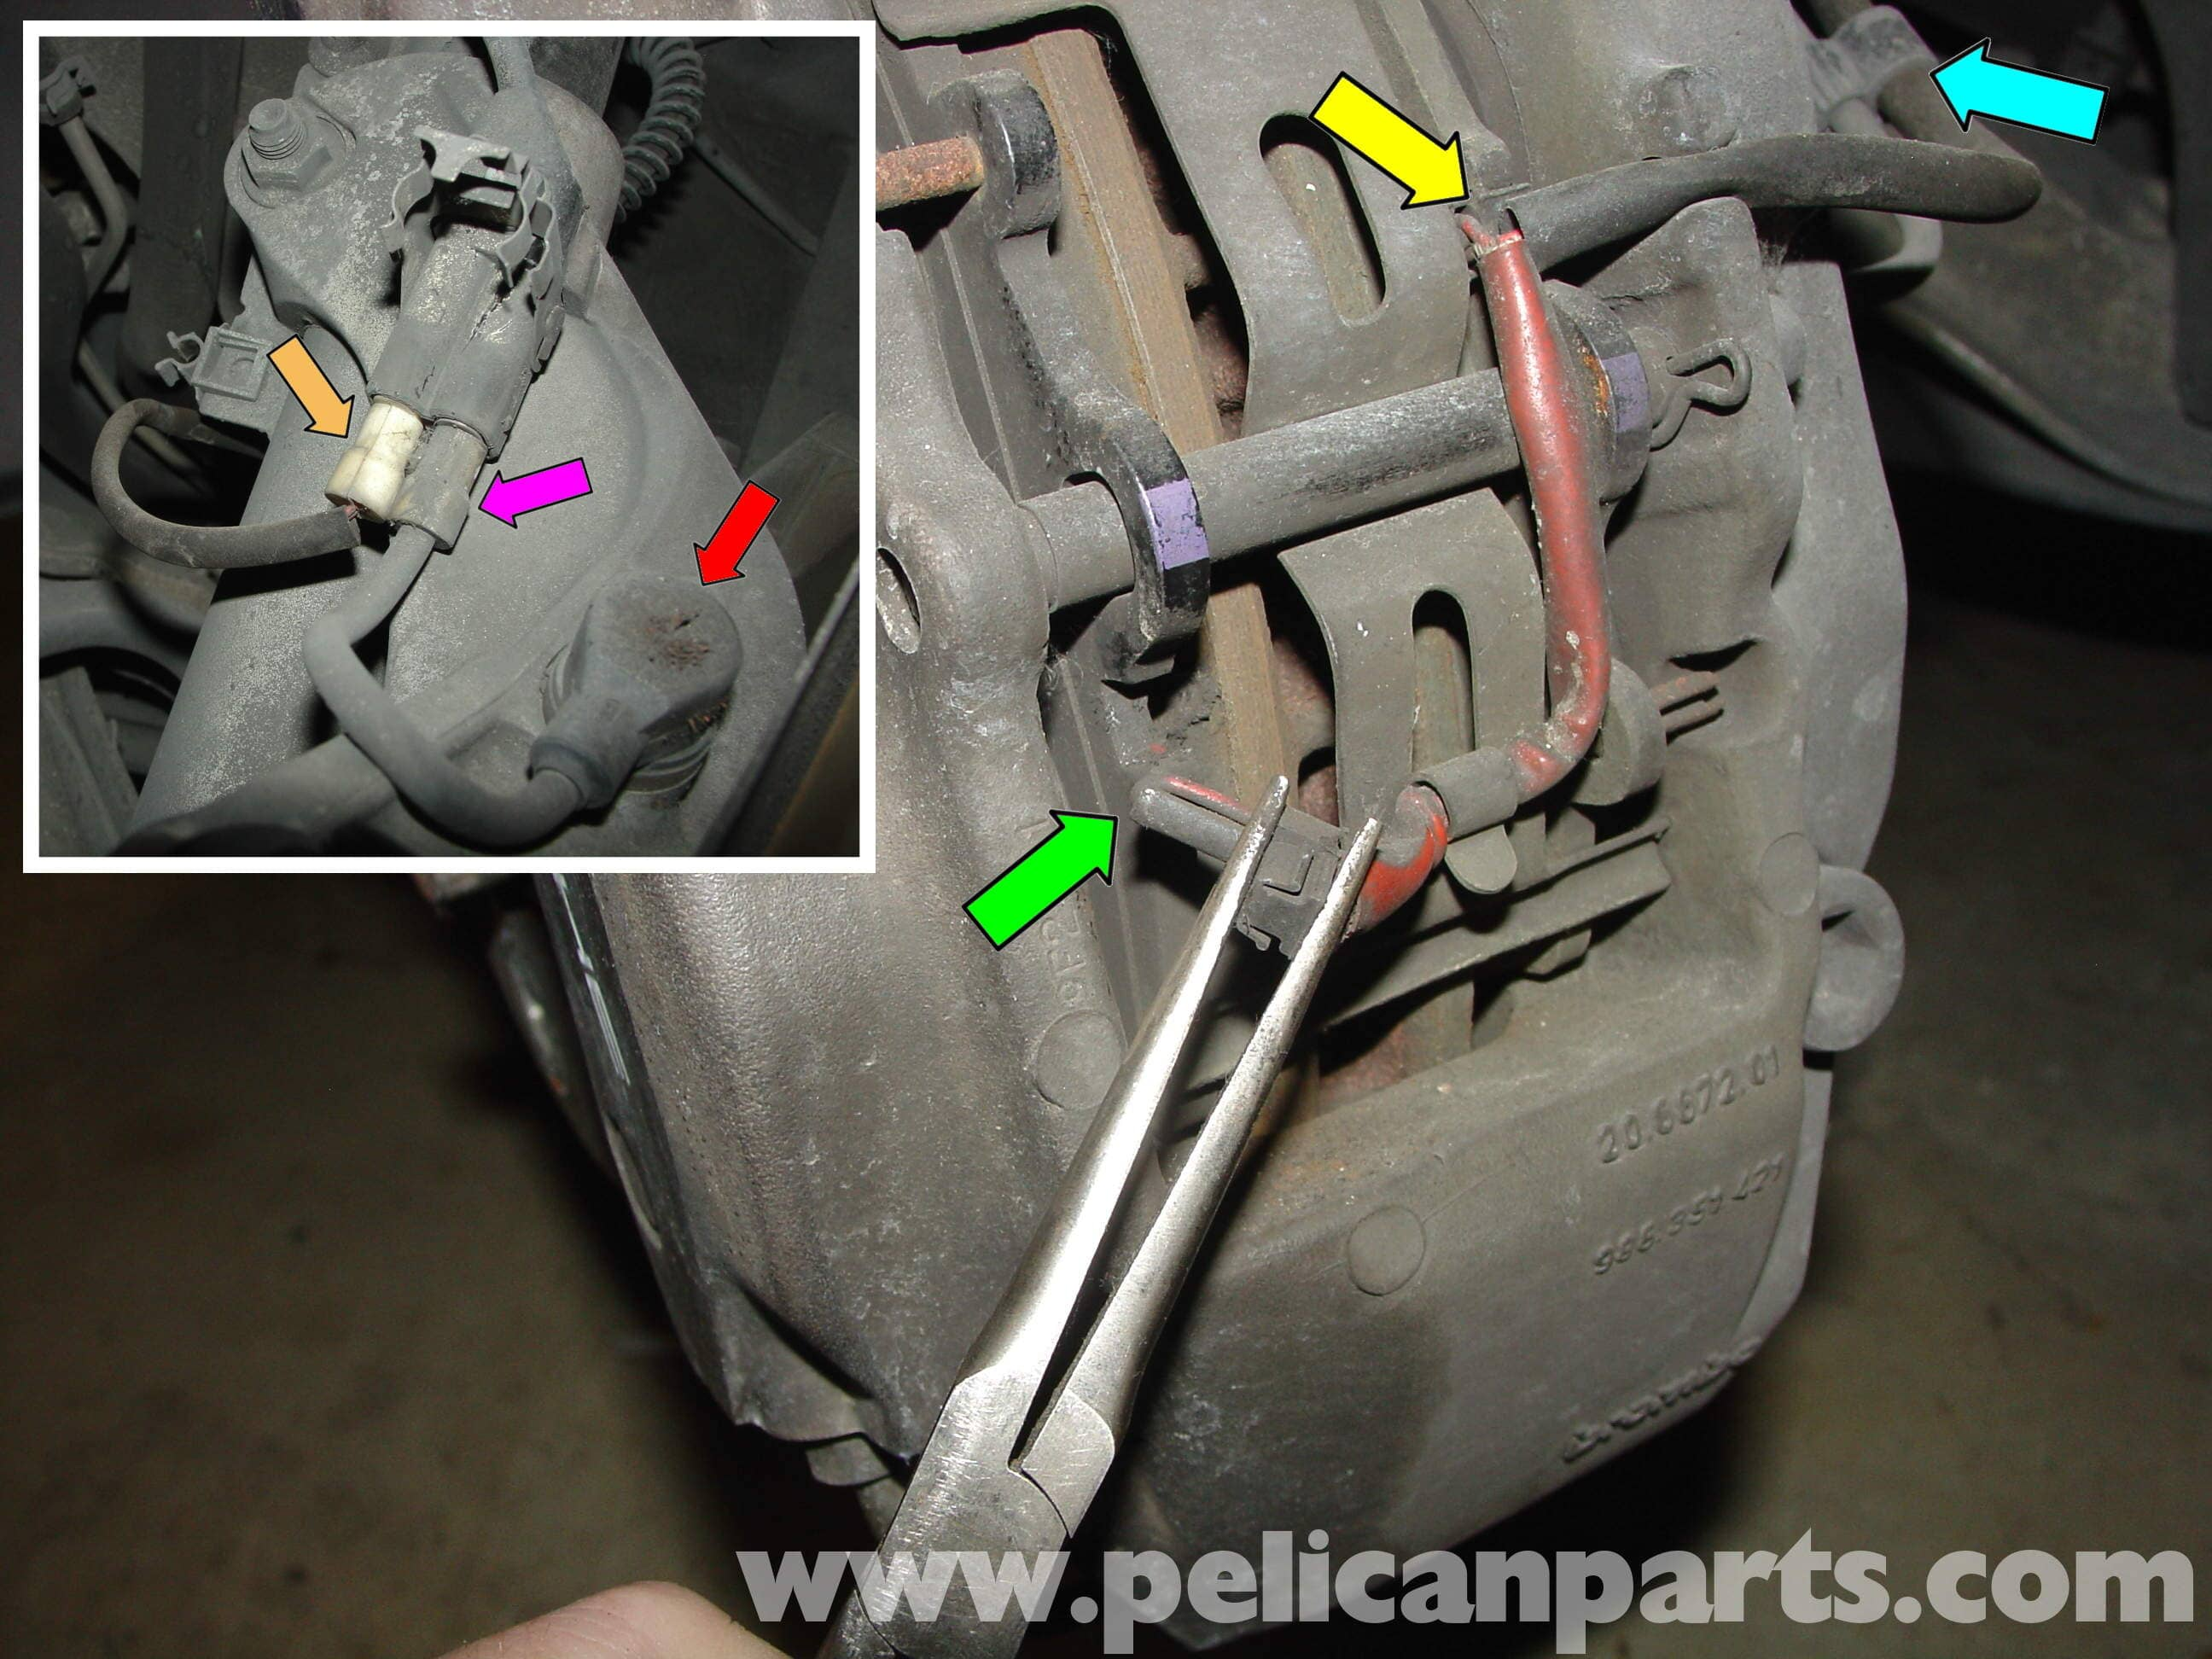 Replacement of brake pad and lining